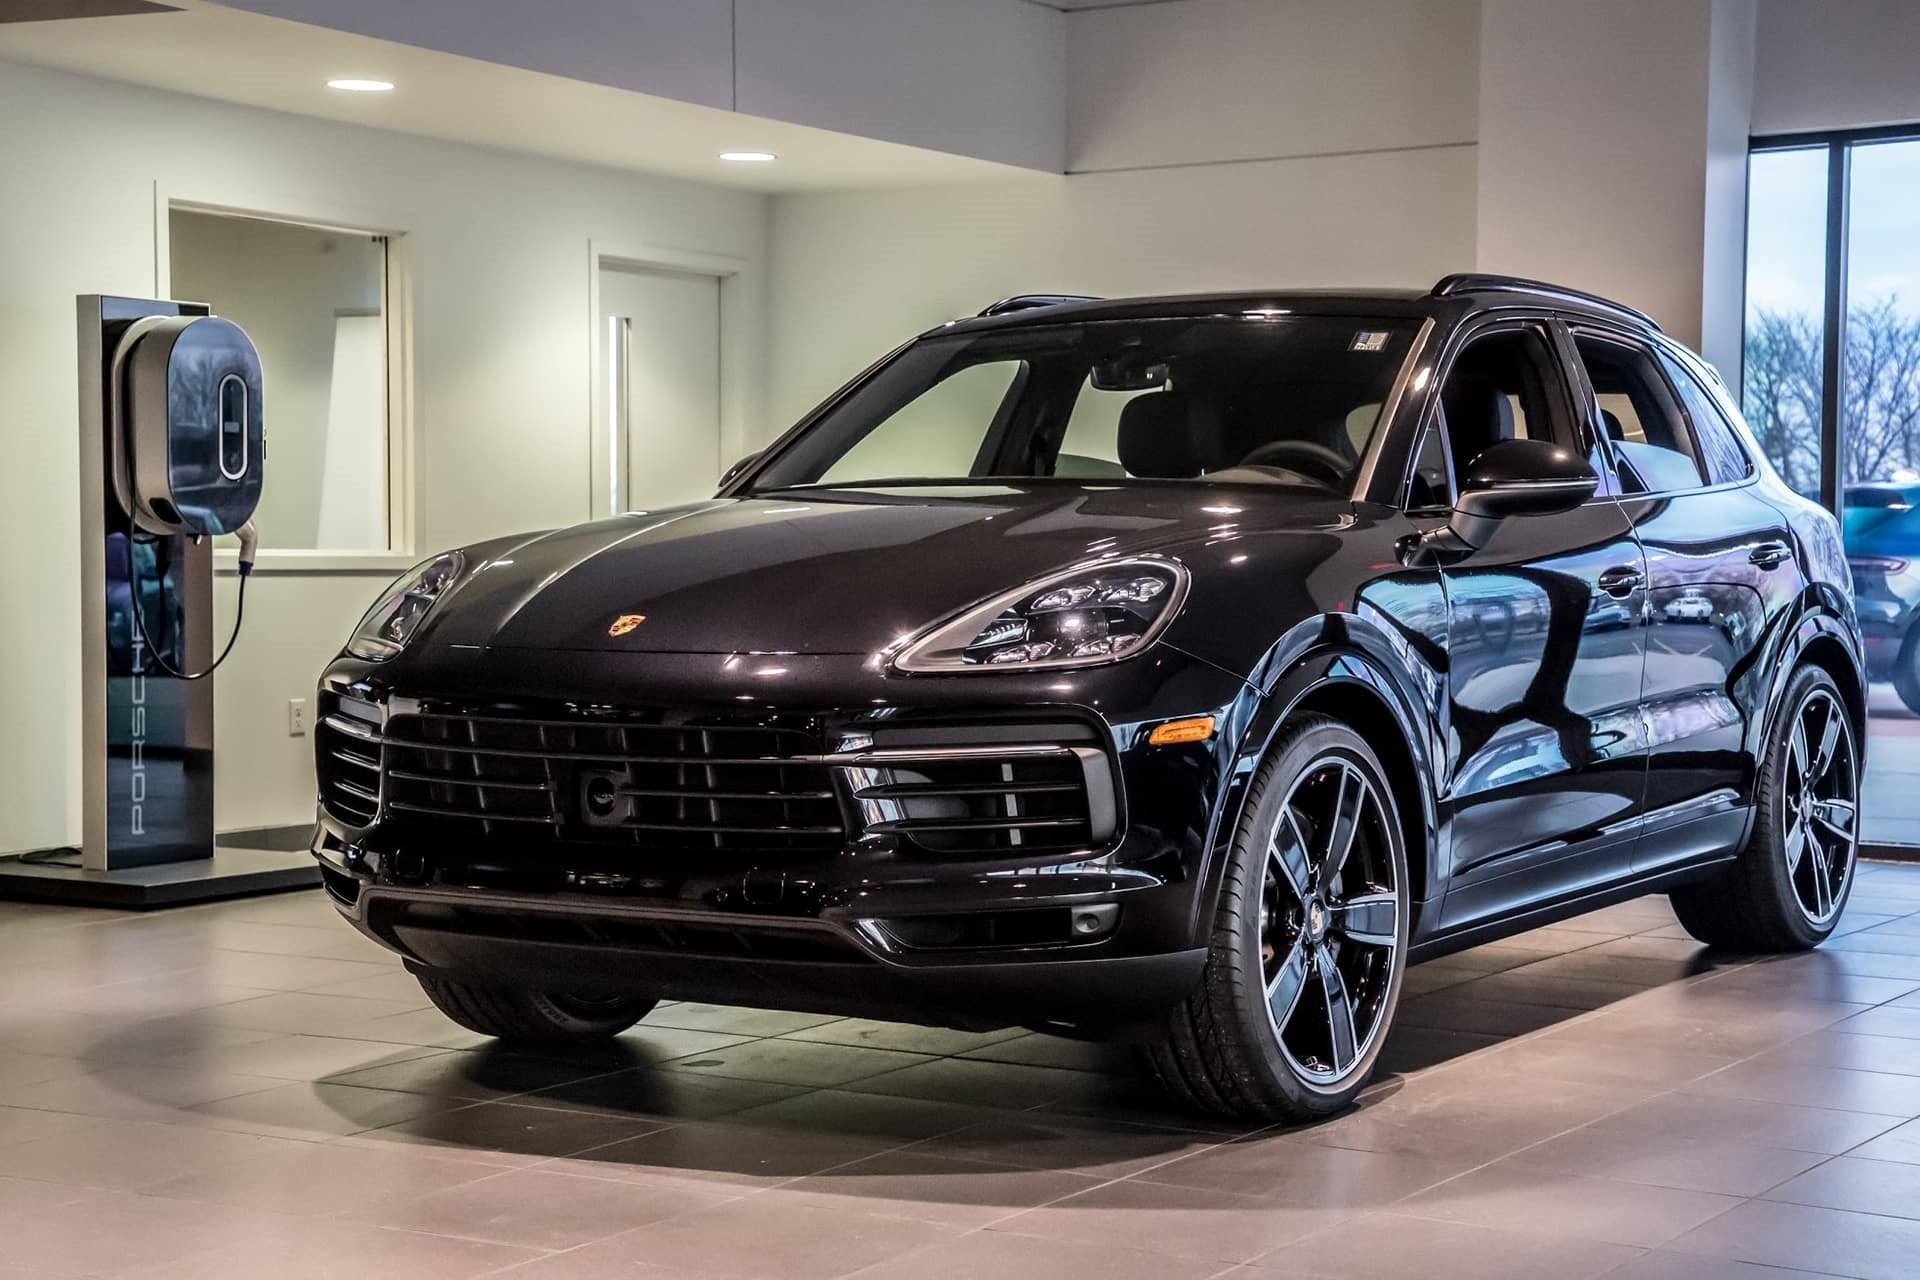 New 2019 Porsche-Cayenne S Cayenne S for sale $82,900 at M and V Leasing in Brooklyn NY 11223 1